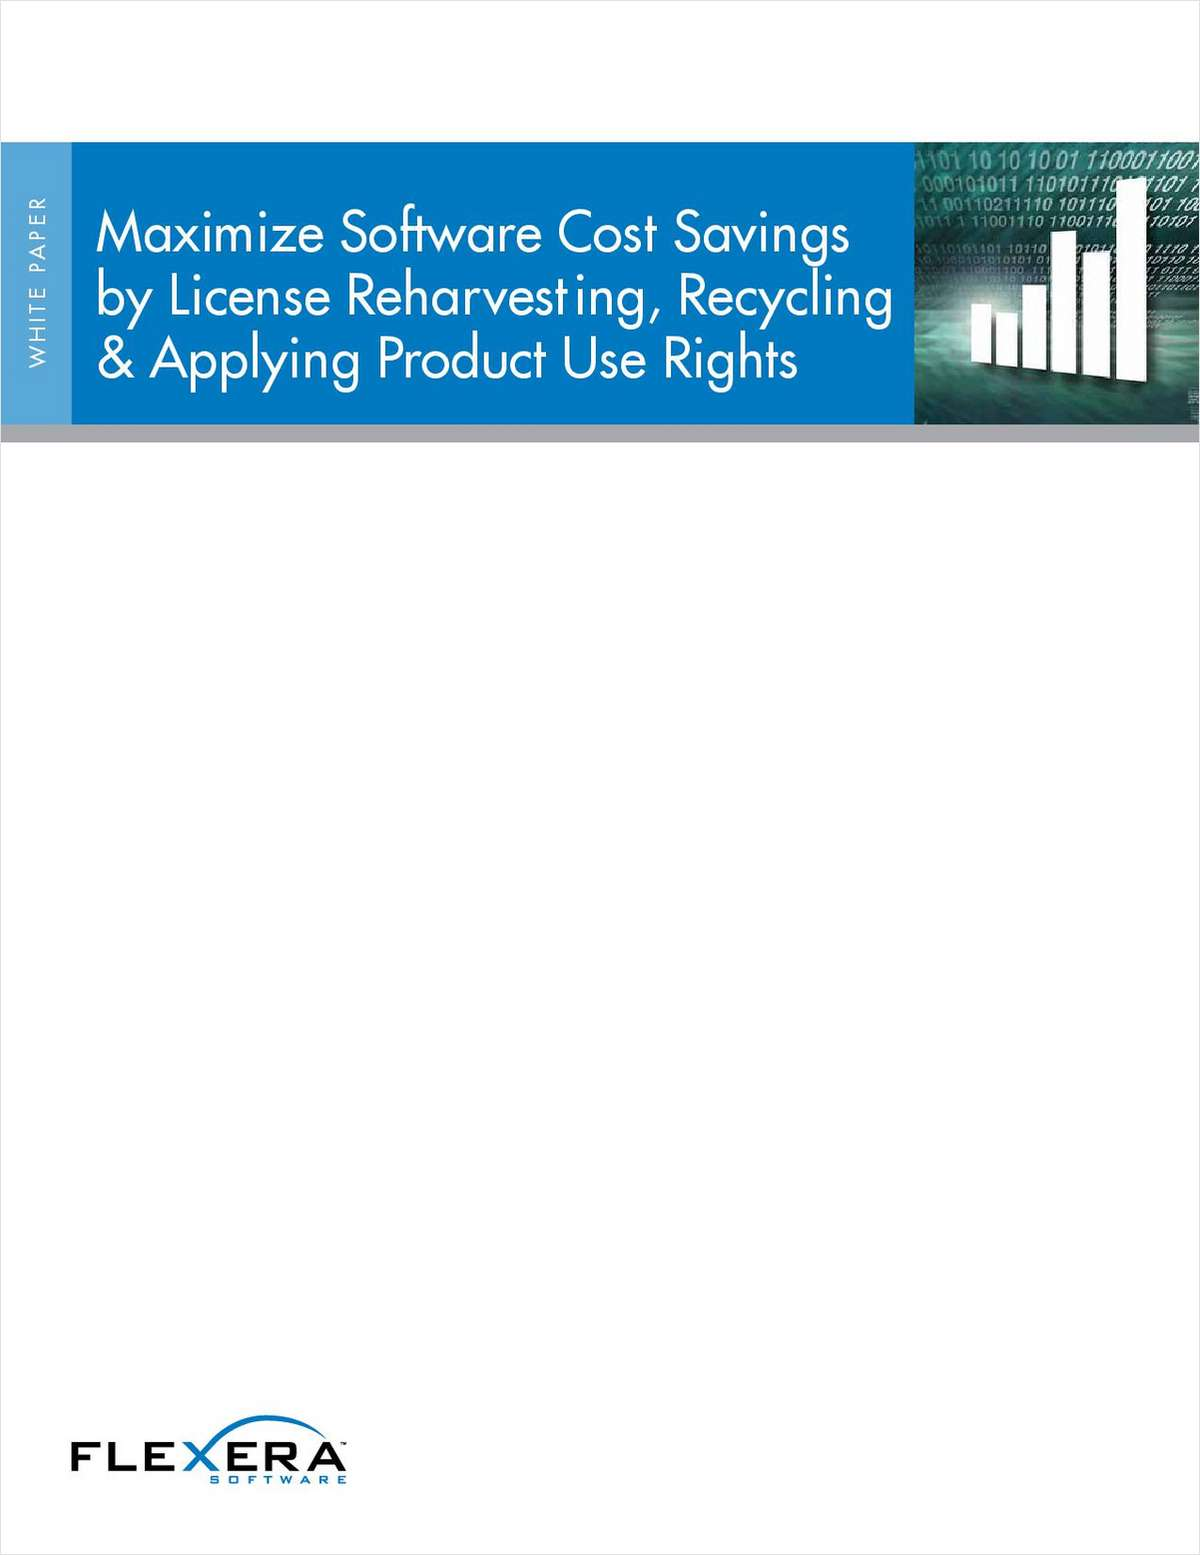 Save Time and Money by Managing Your Application Usage